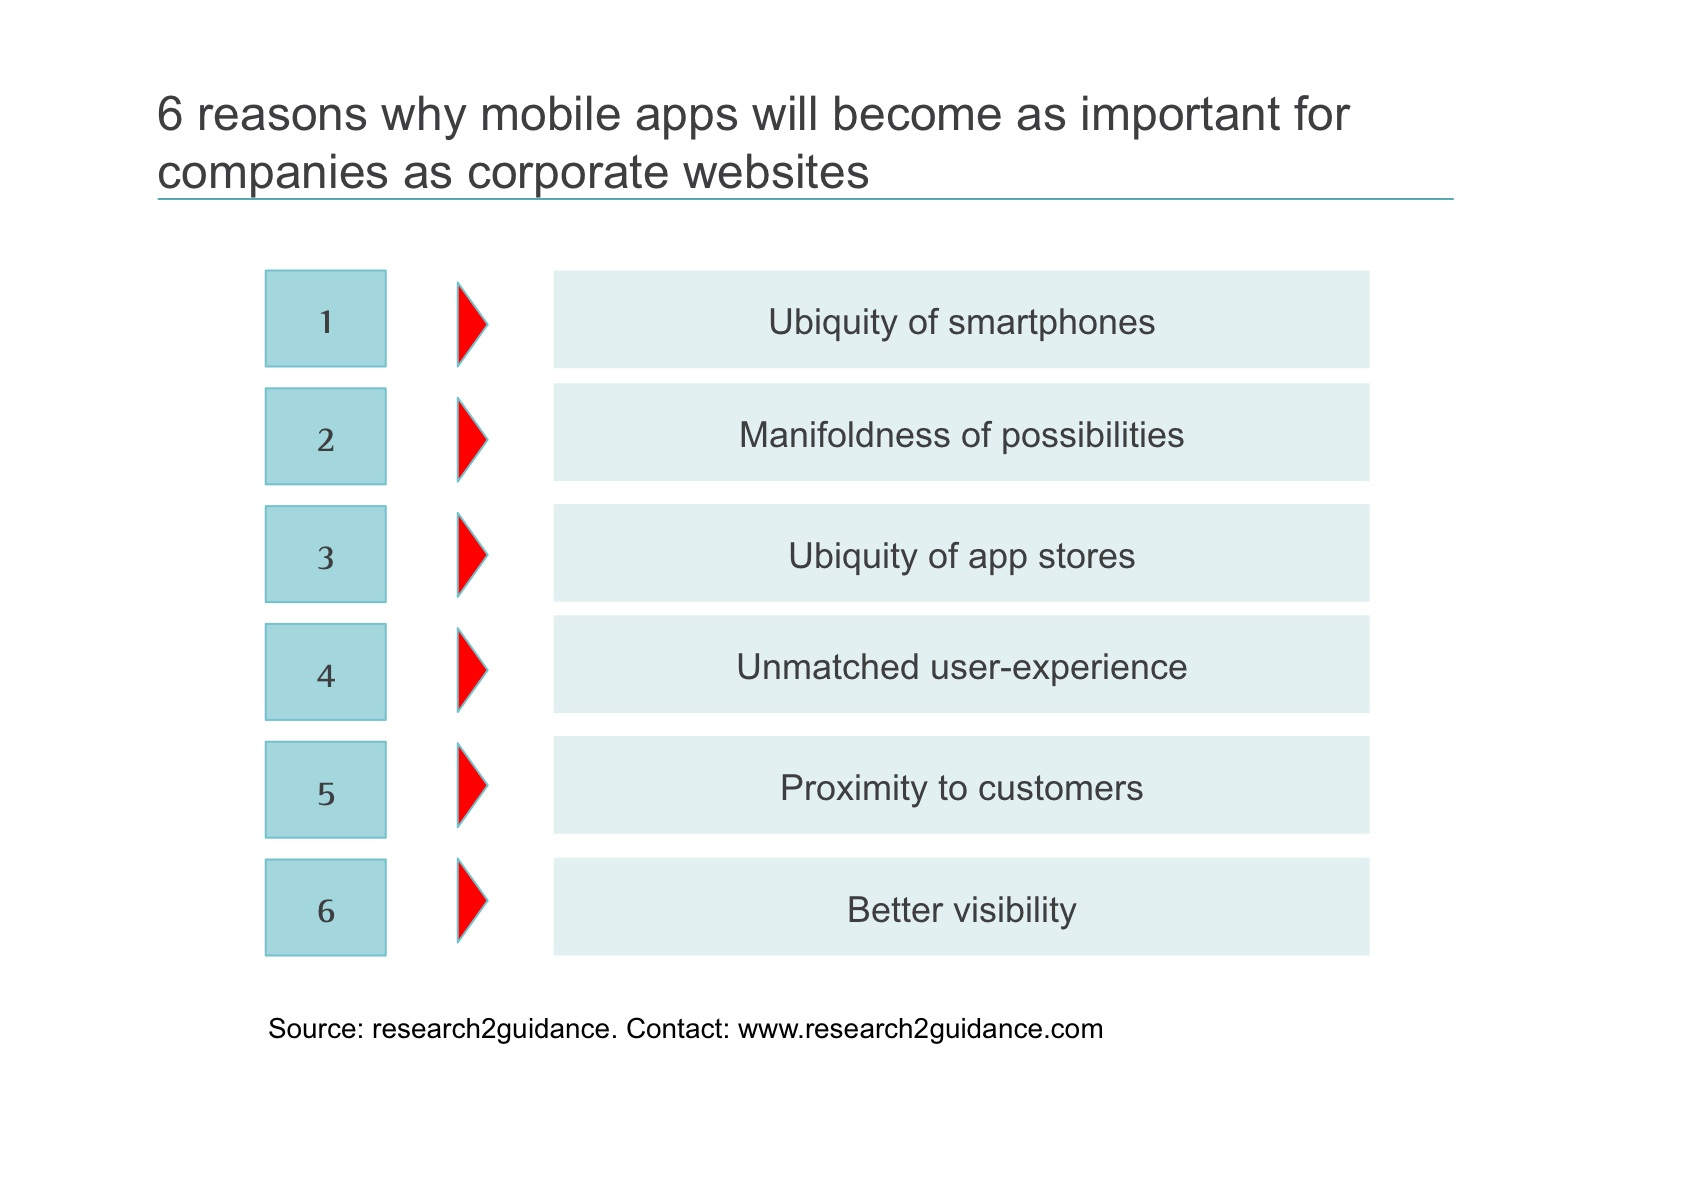 research2guidance - 6 reasons why mobile apps will become as